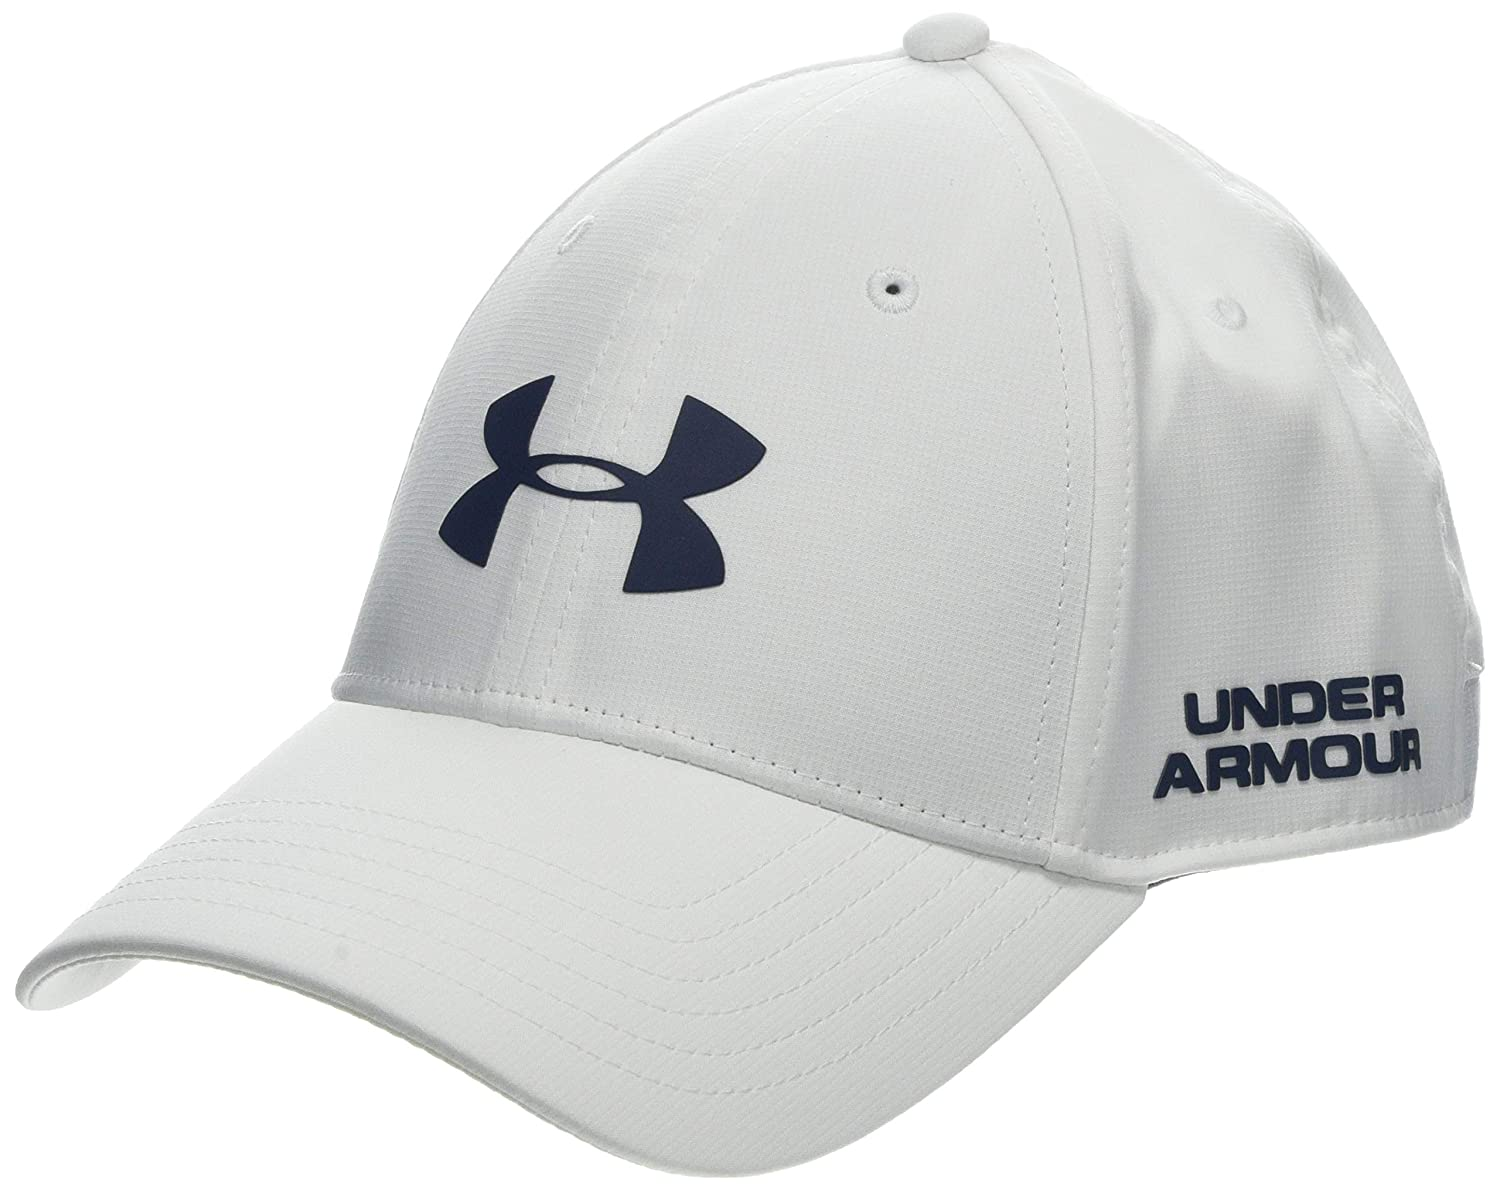 Under Armour Mens Golf Headline 2.0 Cap Gorra, Hombre: Amazon.es: Deportes y aire libre